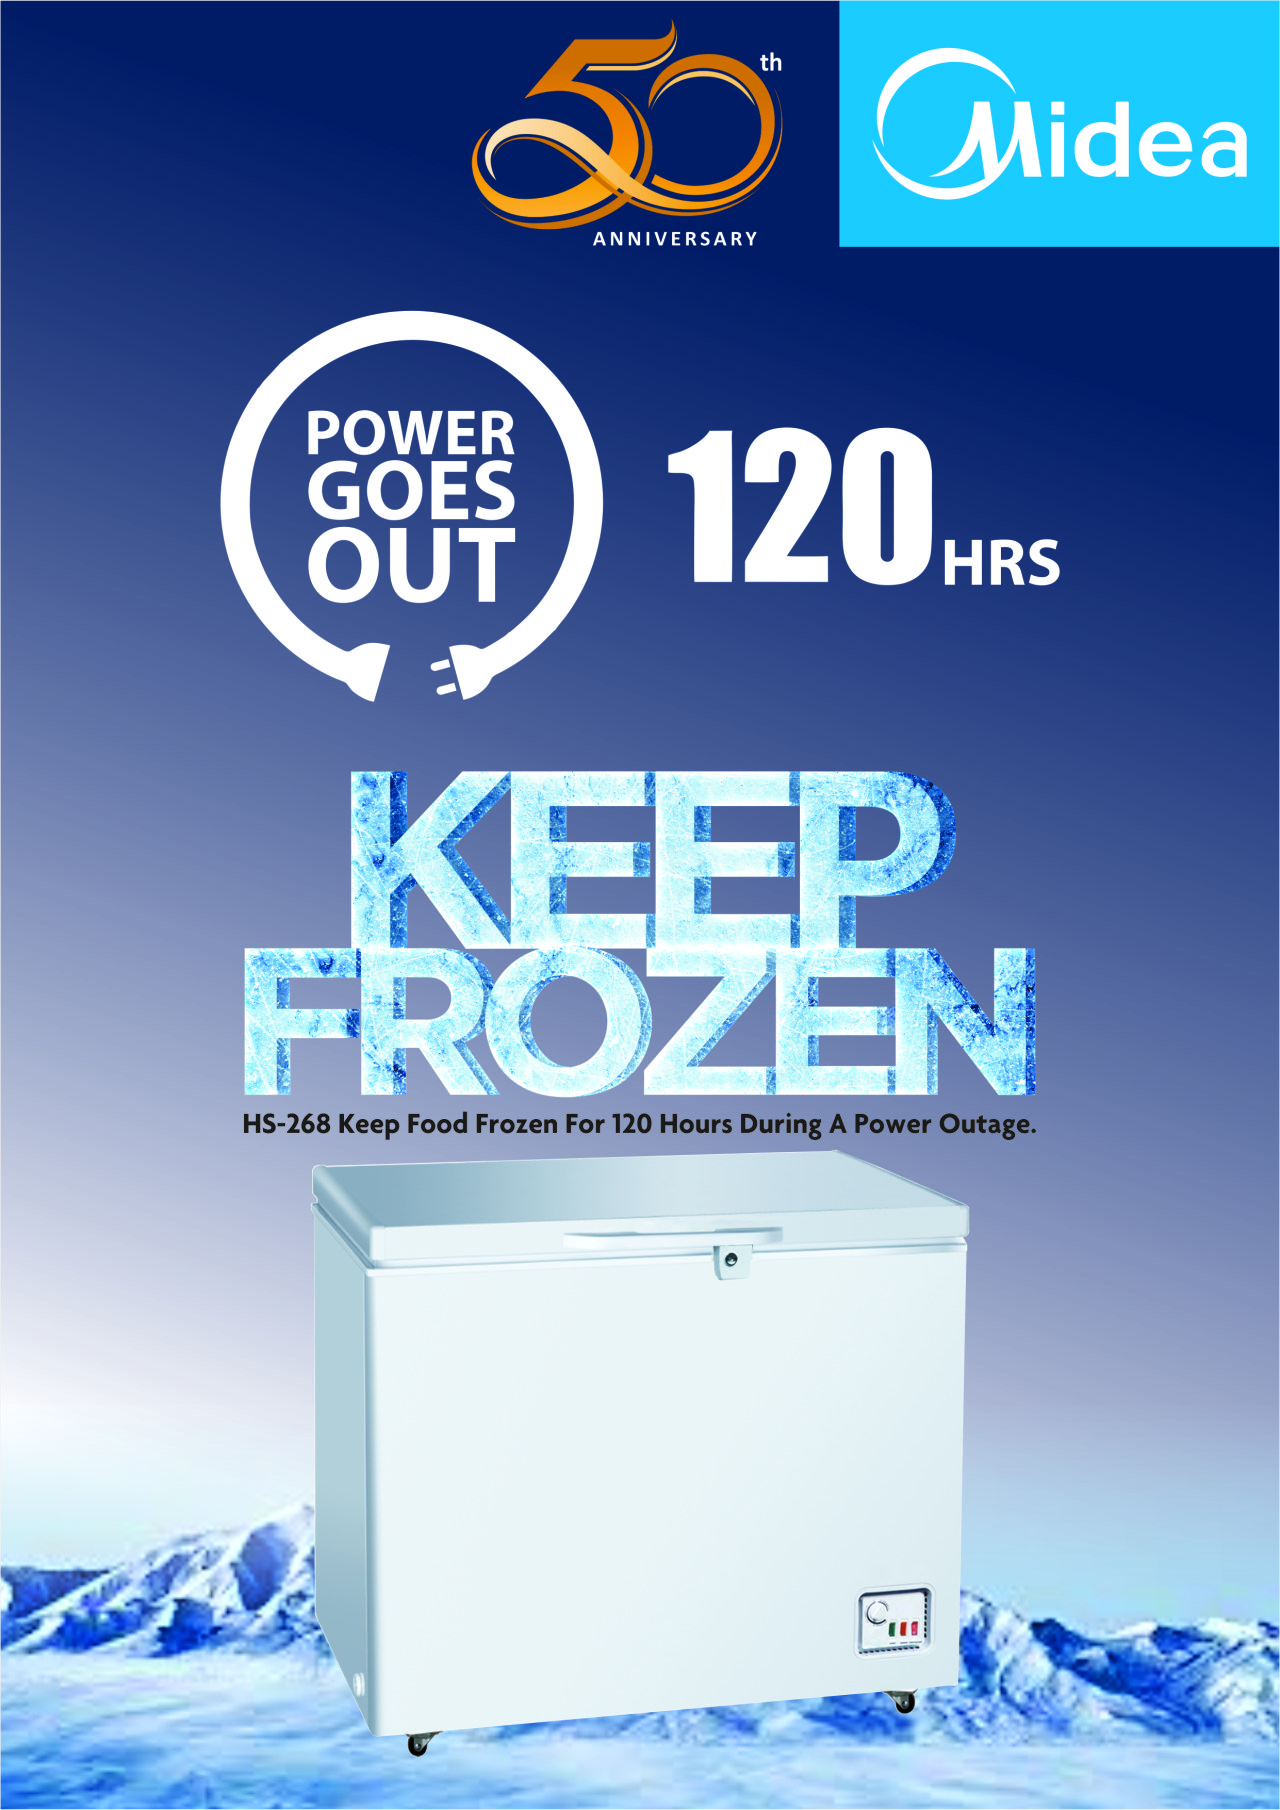 Midea Freezer Review – General features & Prices in Nigeria